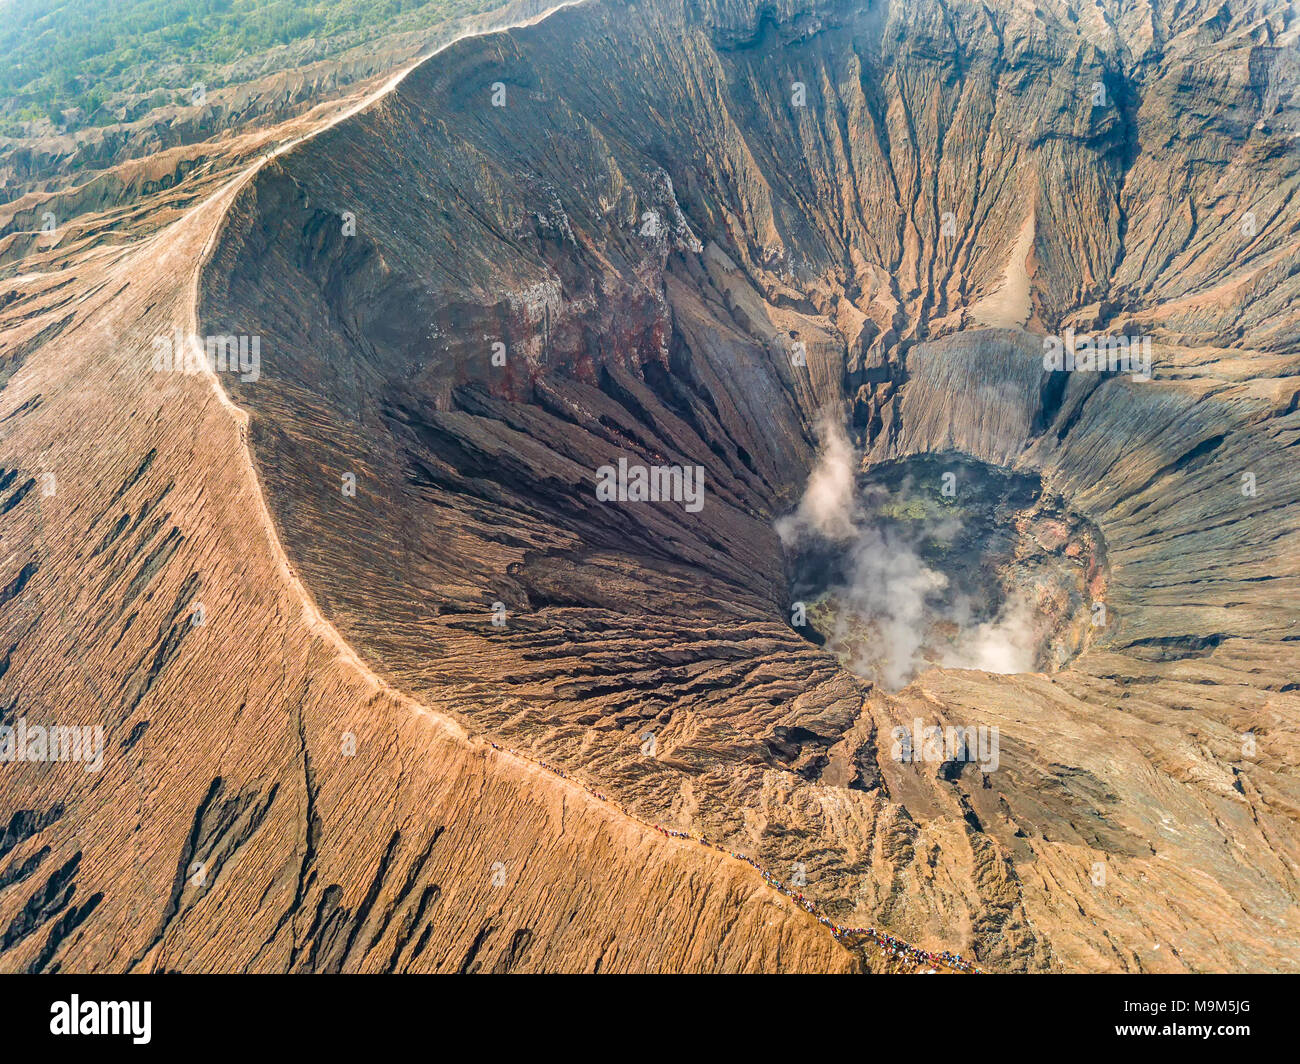 Indonesia. Java island. The active volcano Bromo. Aerial view of the crater and many tourists on the caldera - Stock Image